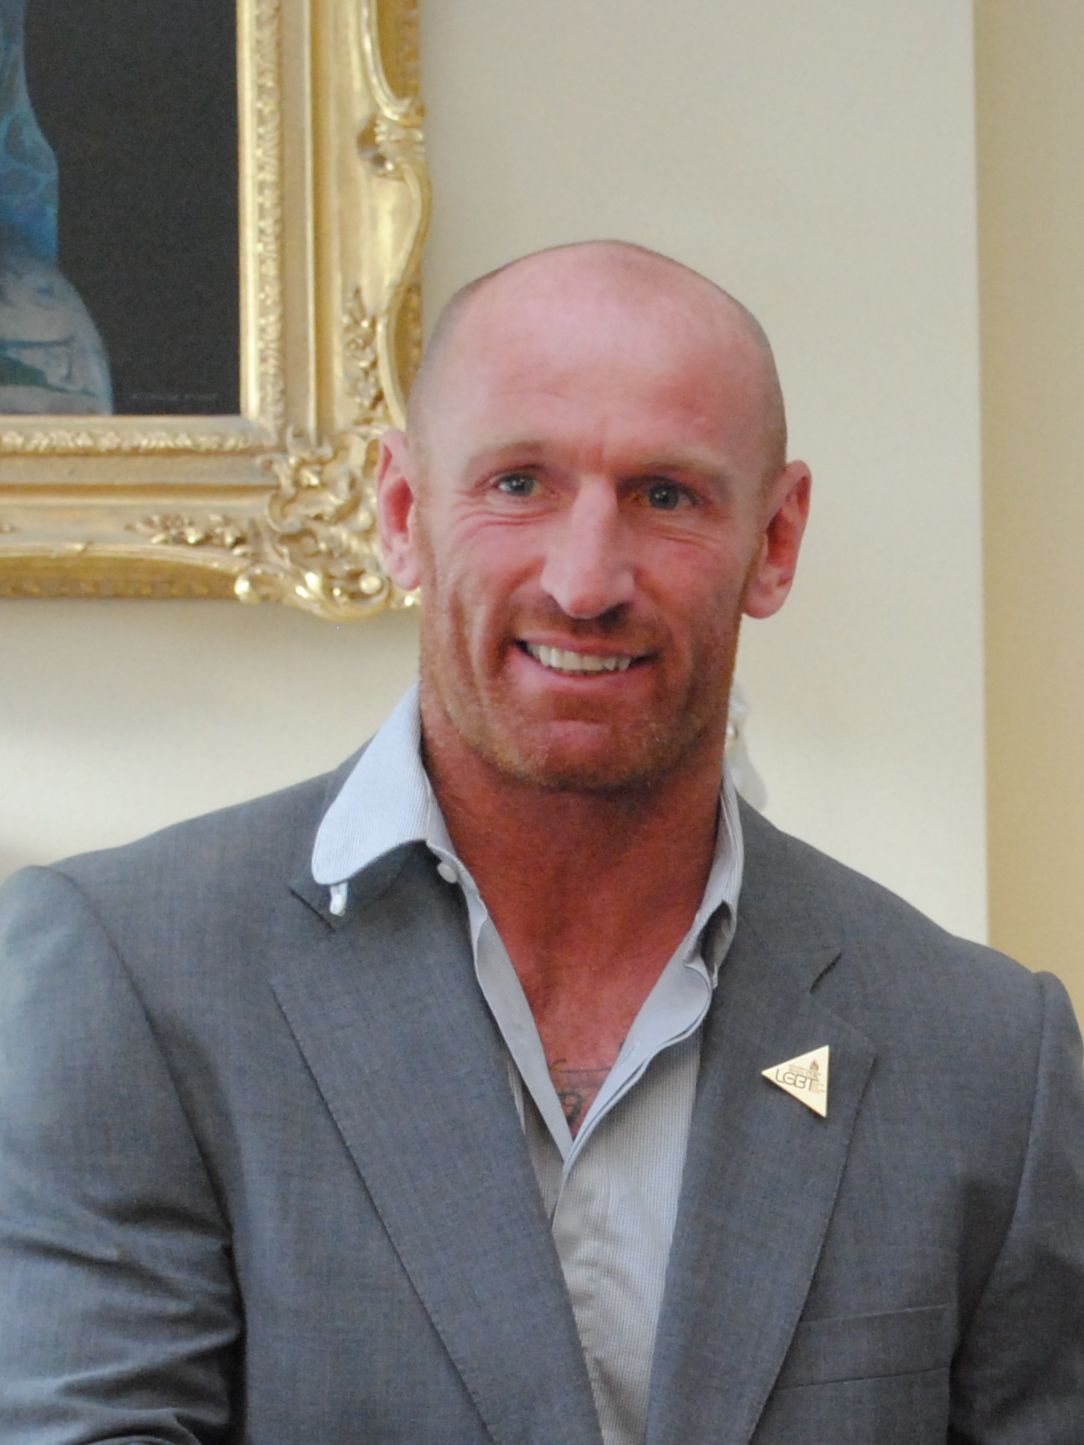 wales gareth gay thomas rugby